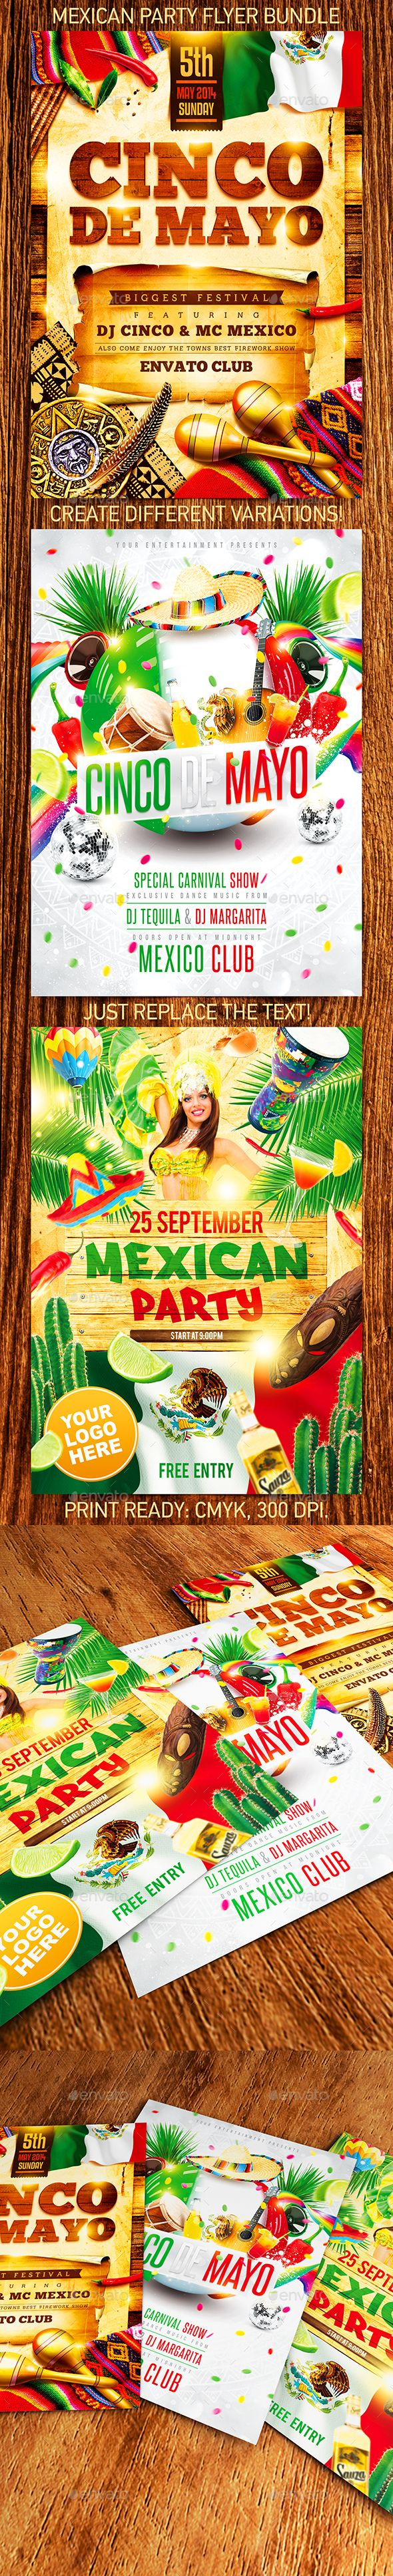 Download Free Graphicriver              Mexican Party Flyer Bundle            #               4ustudio #5 de mayo #cactus #carnival #celebrate #celebration #chili #Cinco de Mayo #colorful costumes #dance #drum #ethnic #festival #fiesta #guitar #hat #holiday #independence day #latin flyer #latin party #latino #May 5th #mayan #mexican flyer #mexican party #mexico #palm #sombrero #taco #tequila